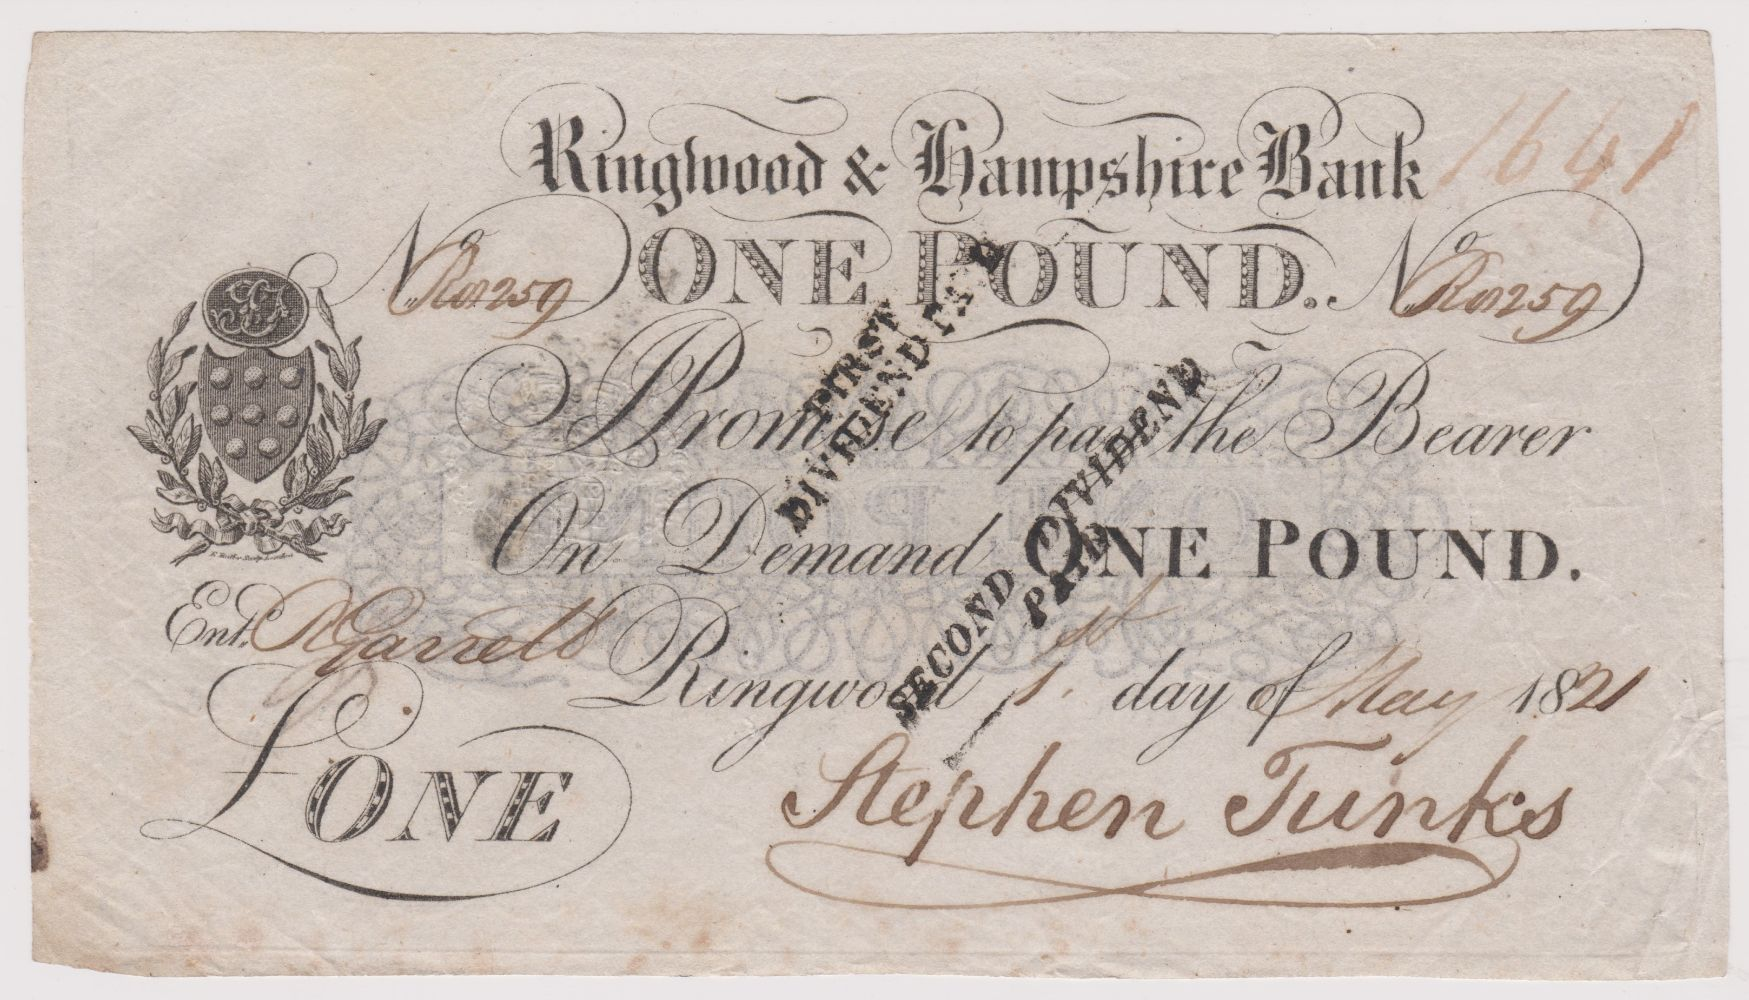 Auction -  incl: Fabric & Textiles (100 lots) Victorian to Bygones, Militaria WWII German Porcelain, Banknotes British & Foreign from 1821.